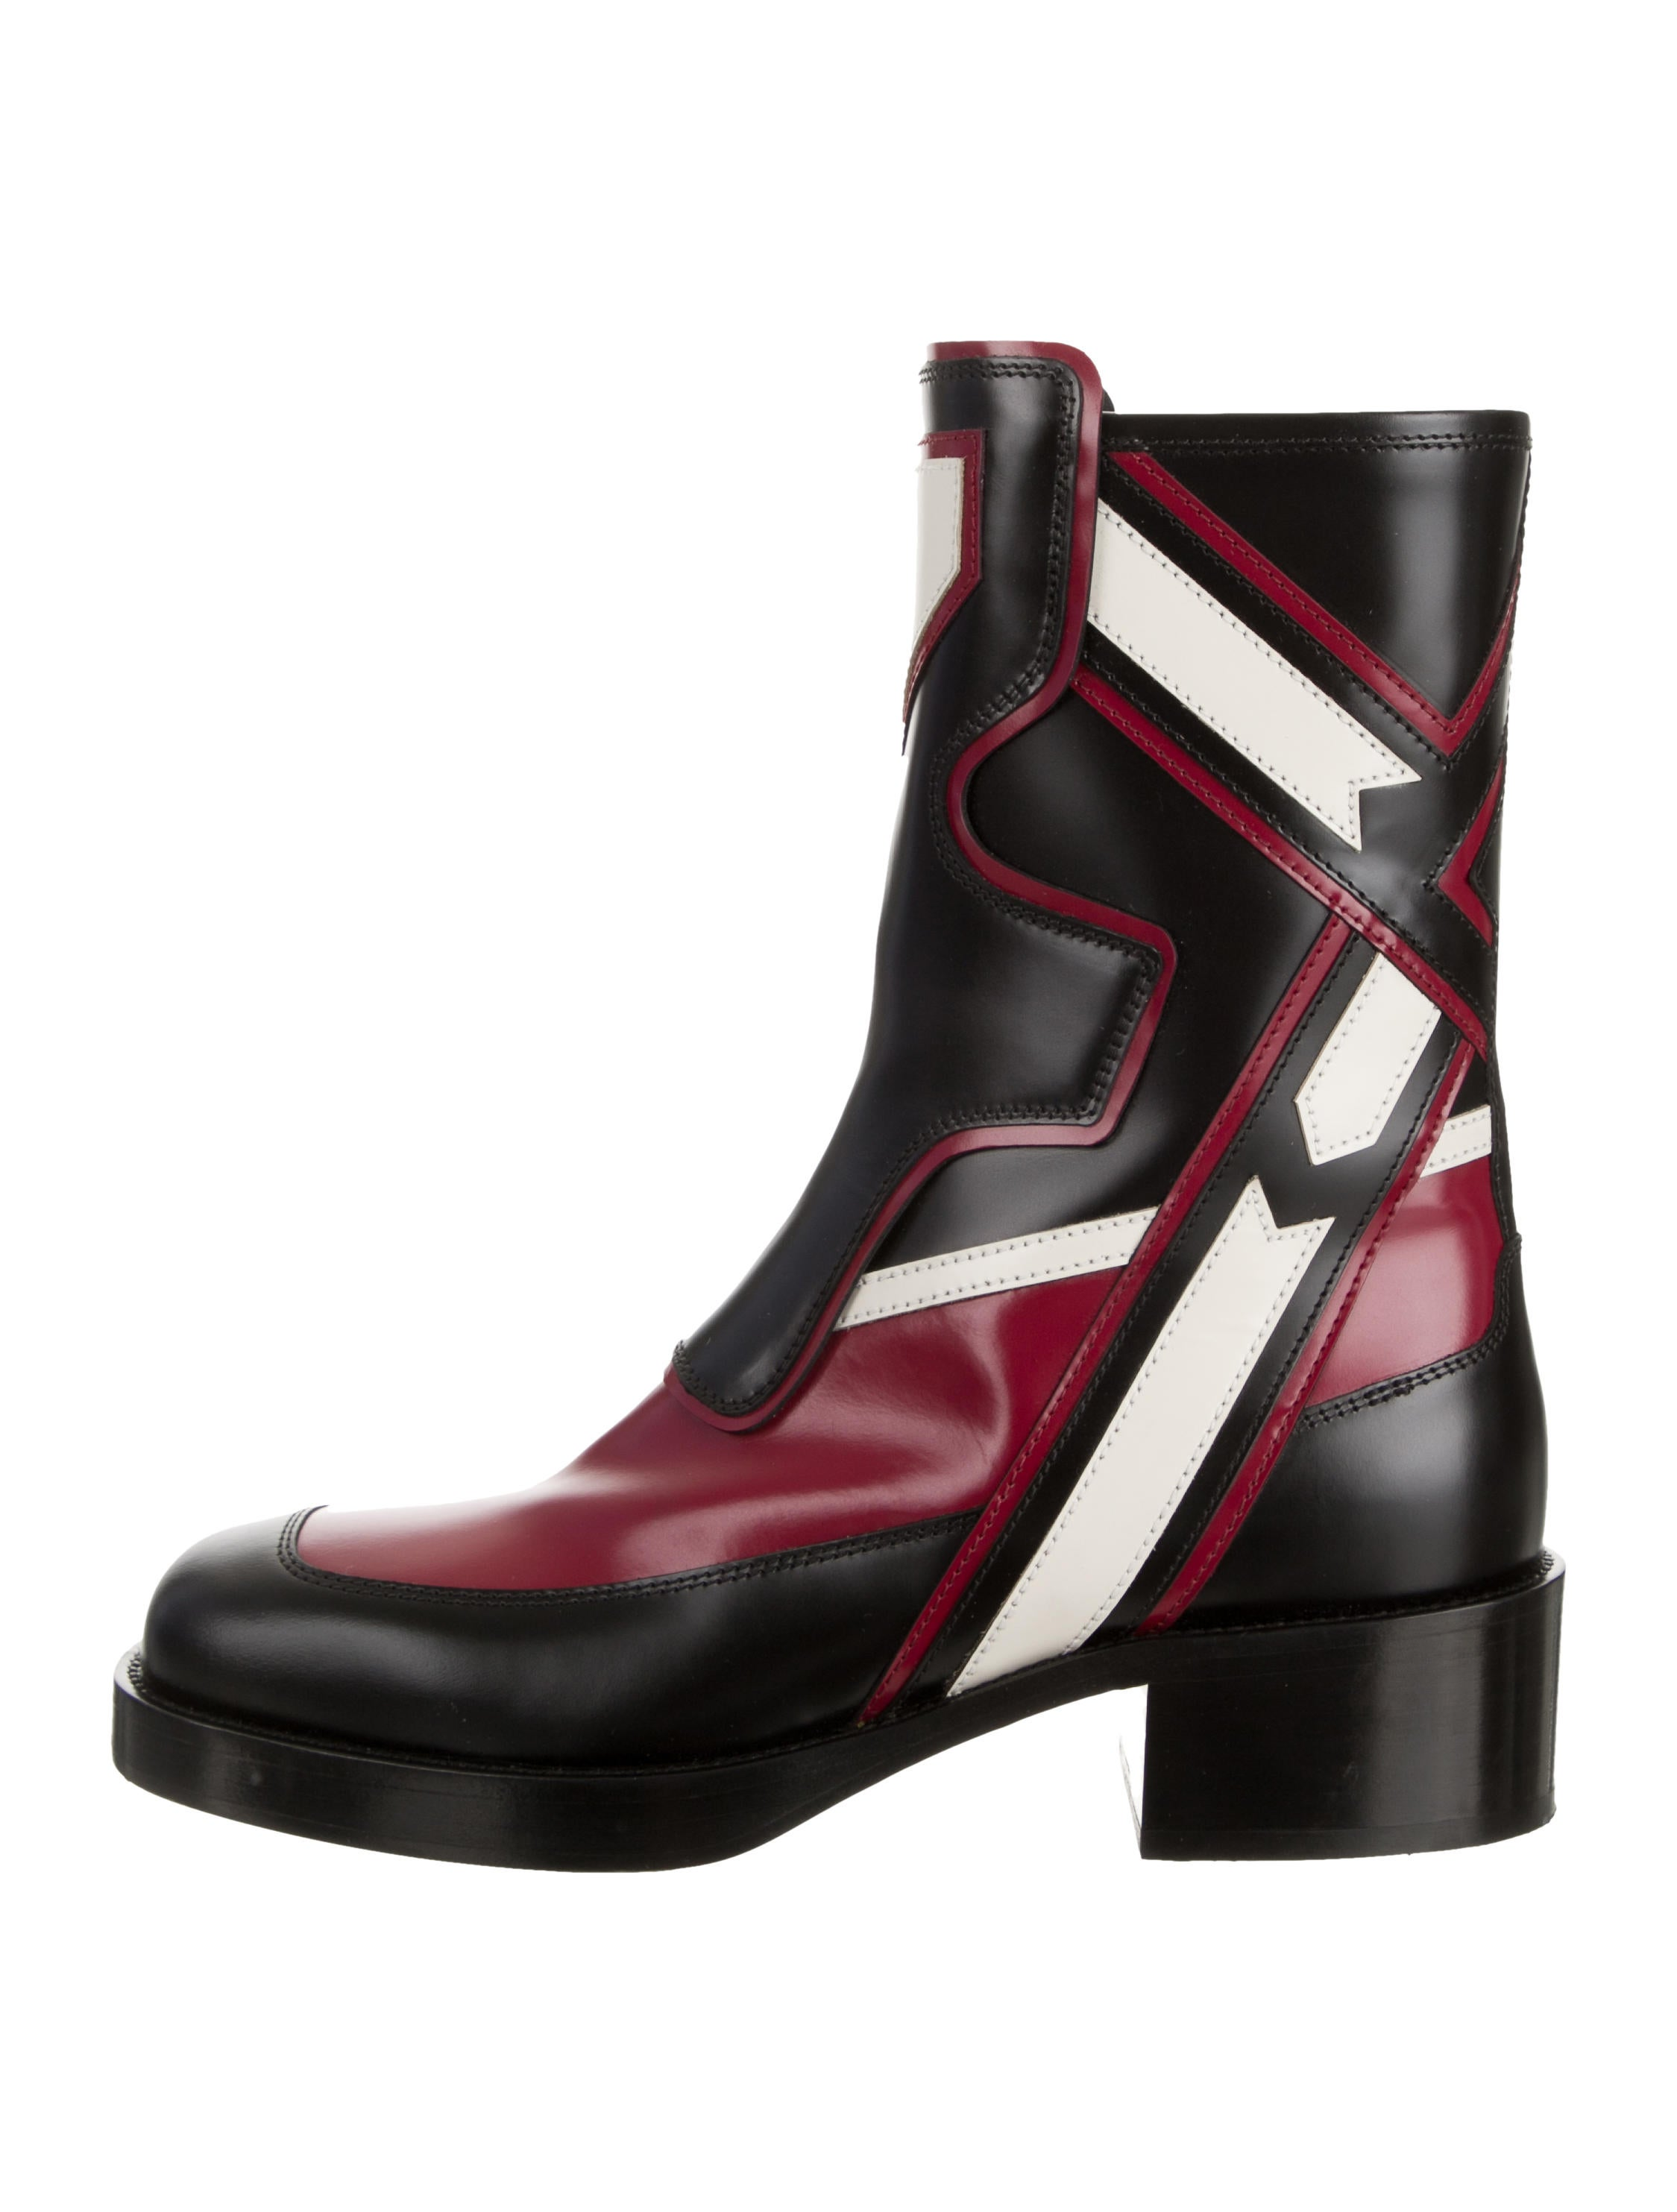 Diorally Ankle Boots - Shoes